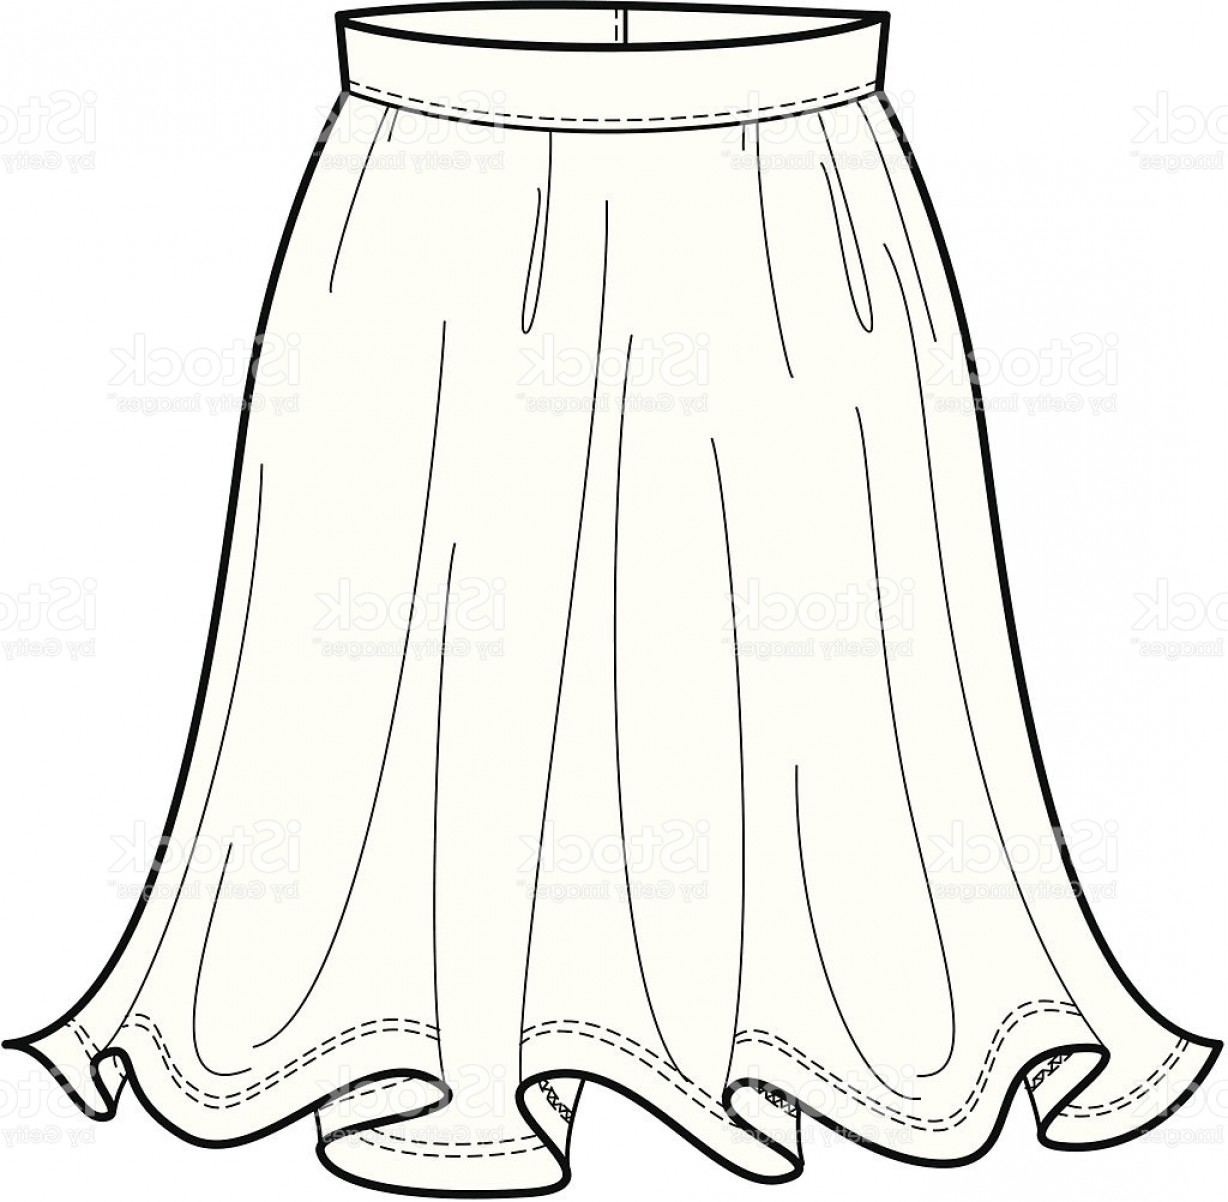 Skirt clipart black and white royalty free Fashion Illustration Of A Flowing Skirt Gm | SOIDERGI royalty free